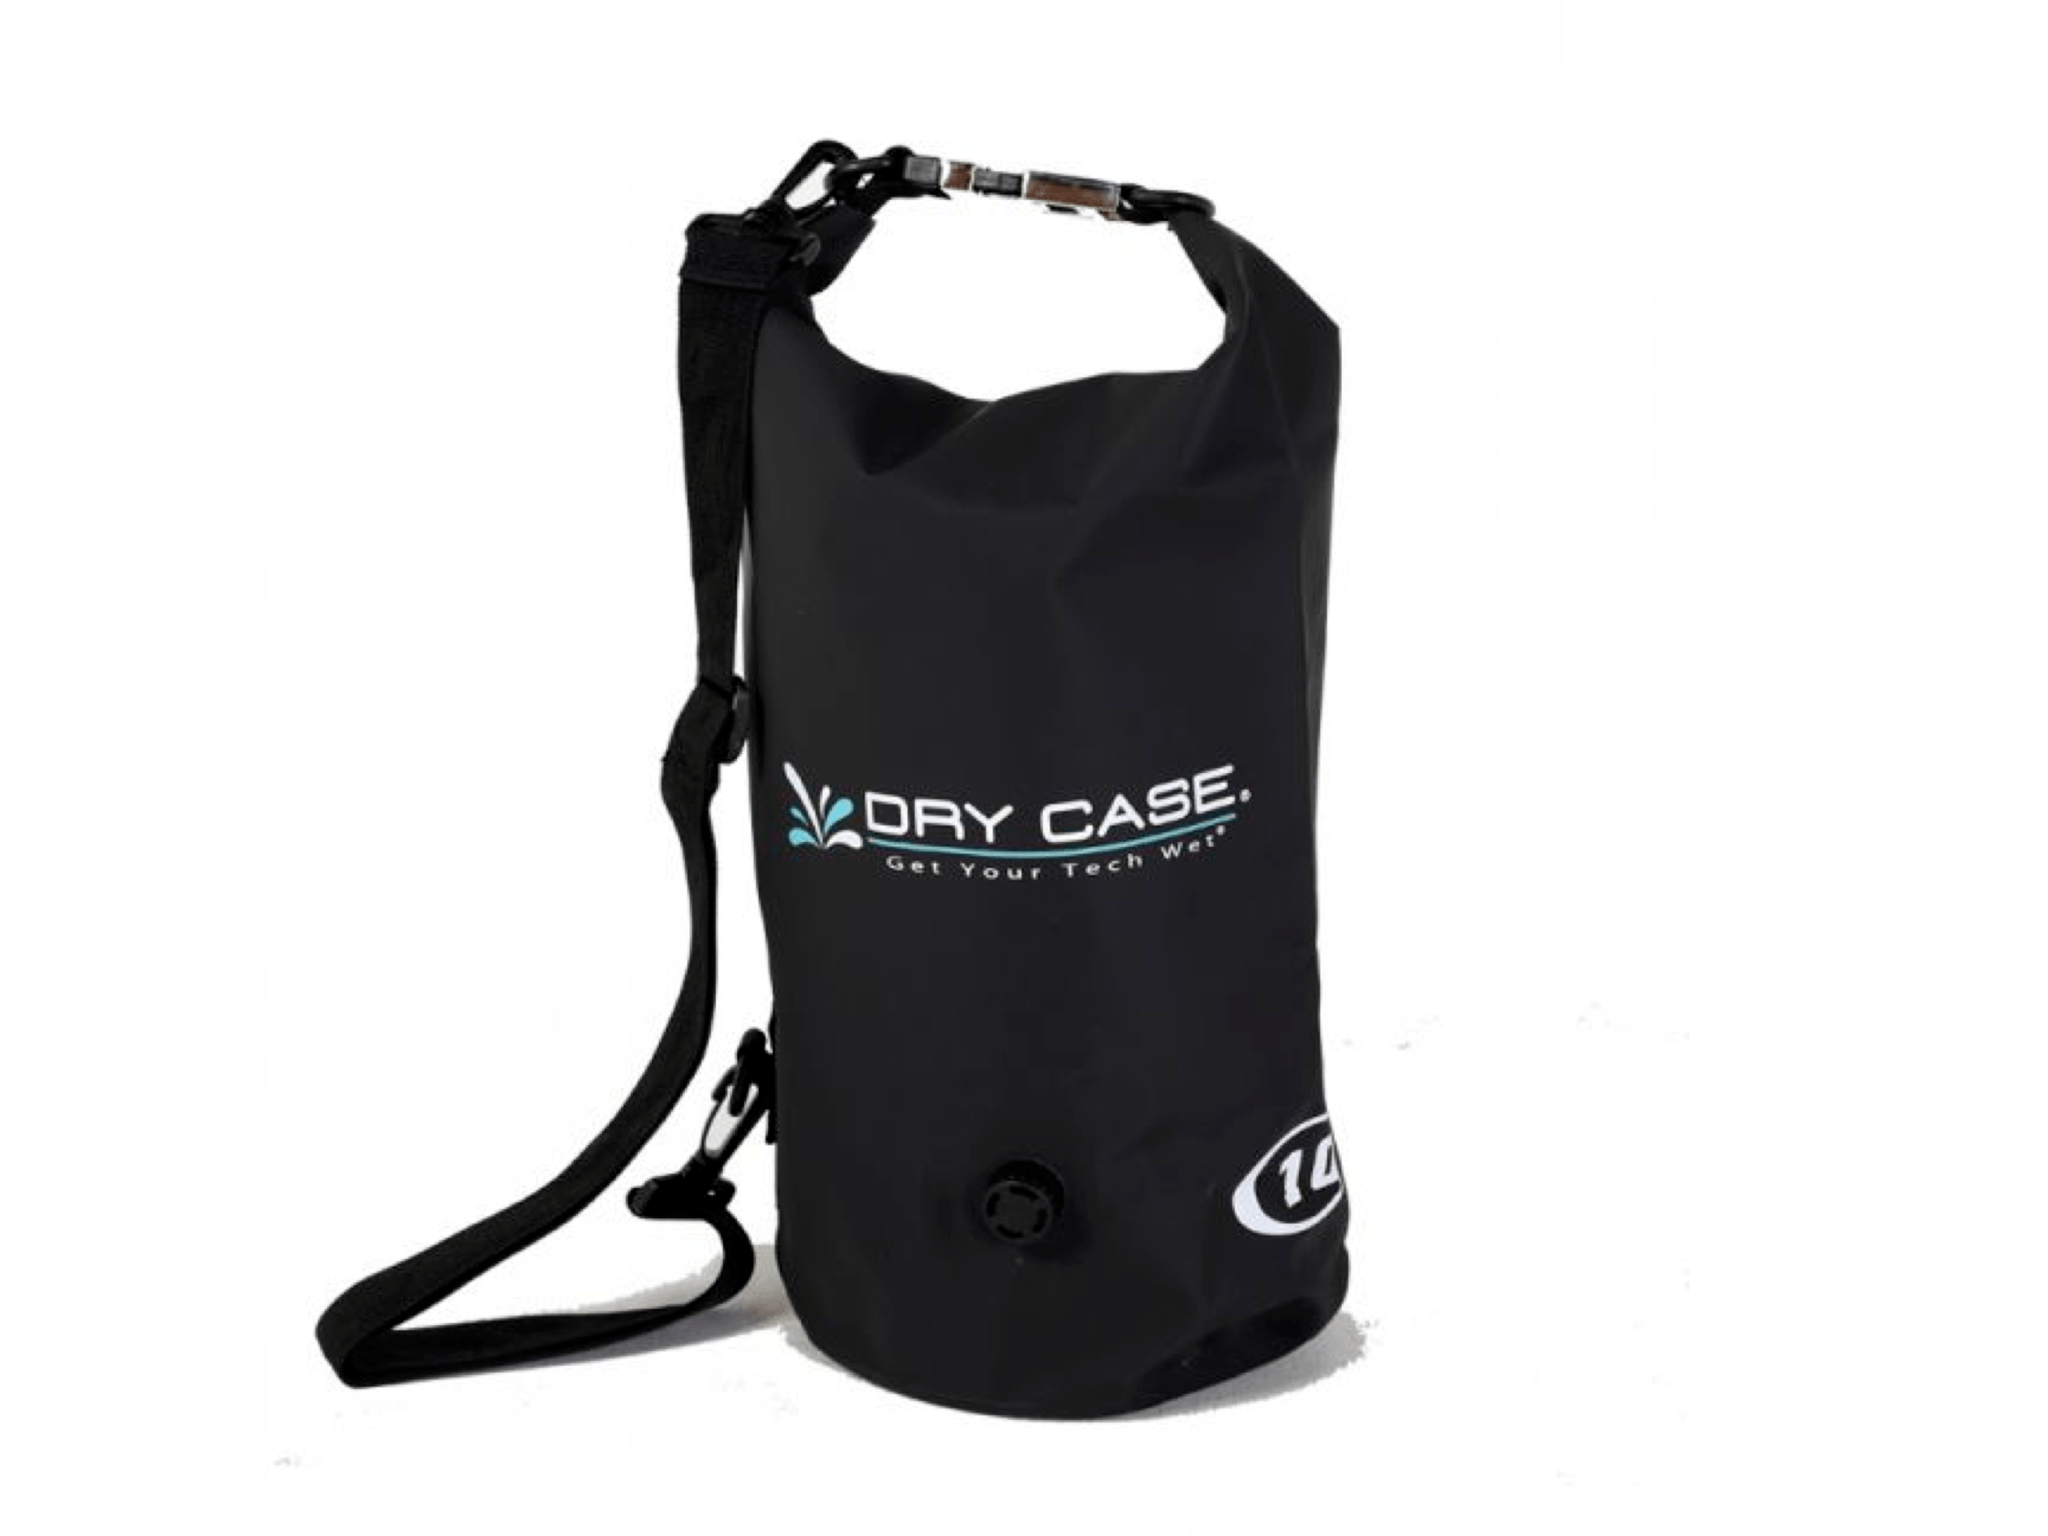 Drycase Deca Pack  adc45386d094f